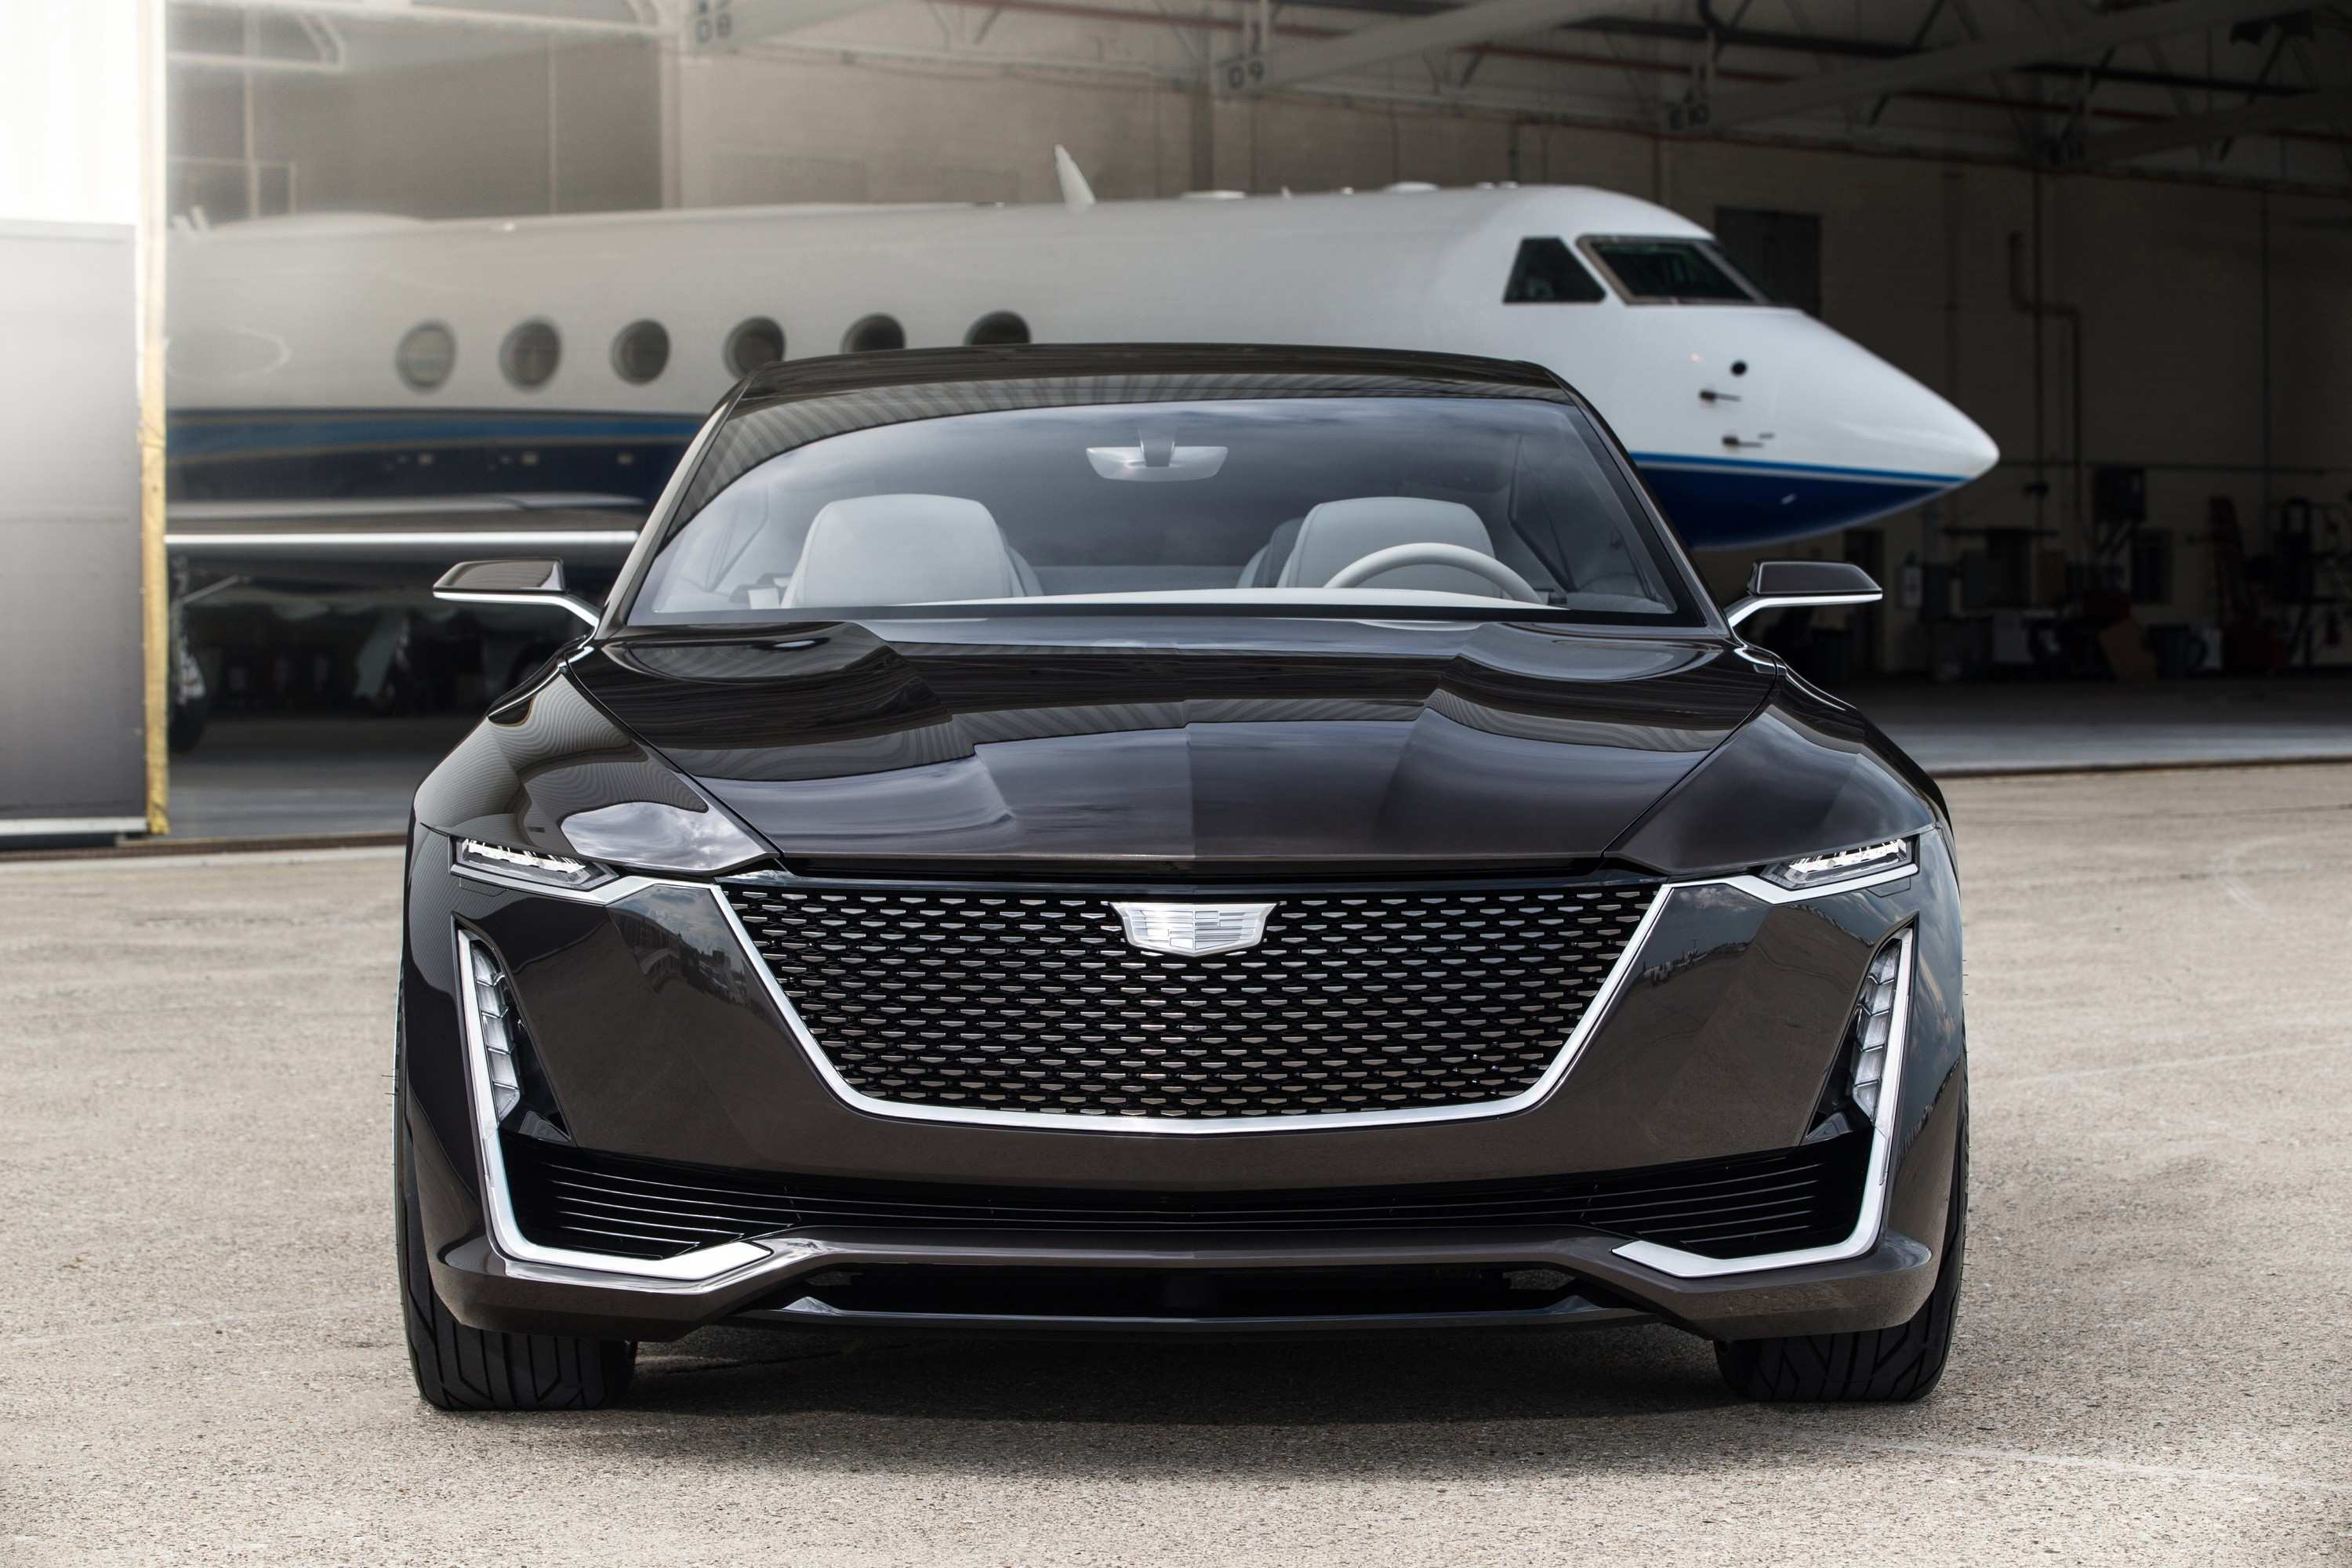 88 A New Cadillac Models For 2020 Spesification